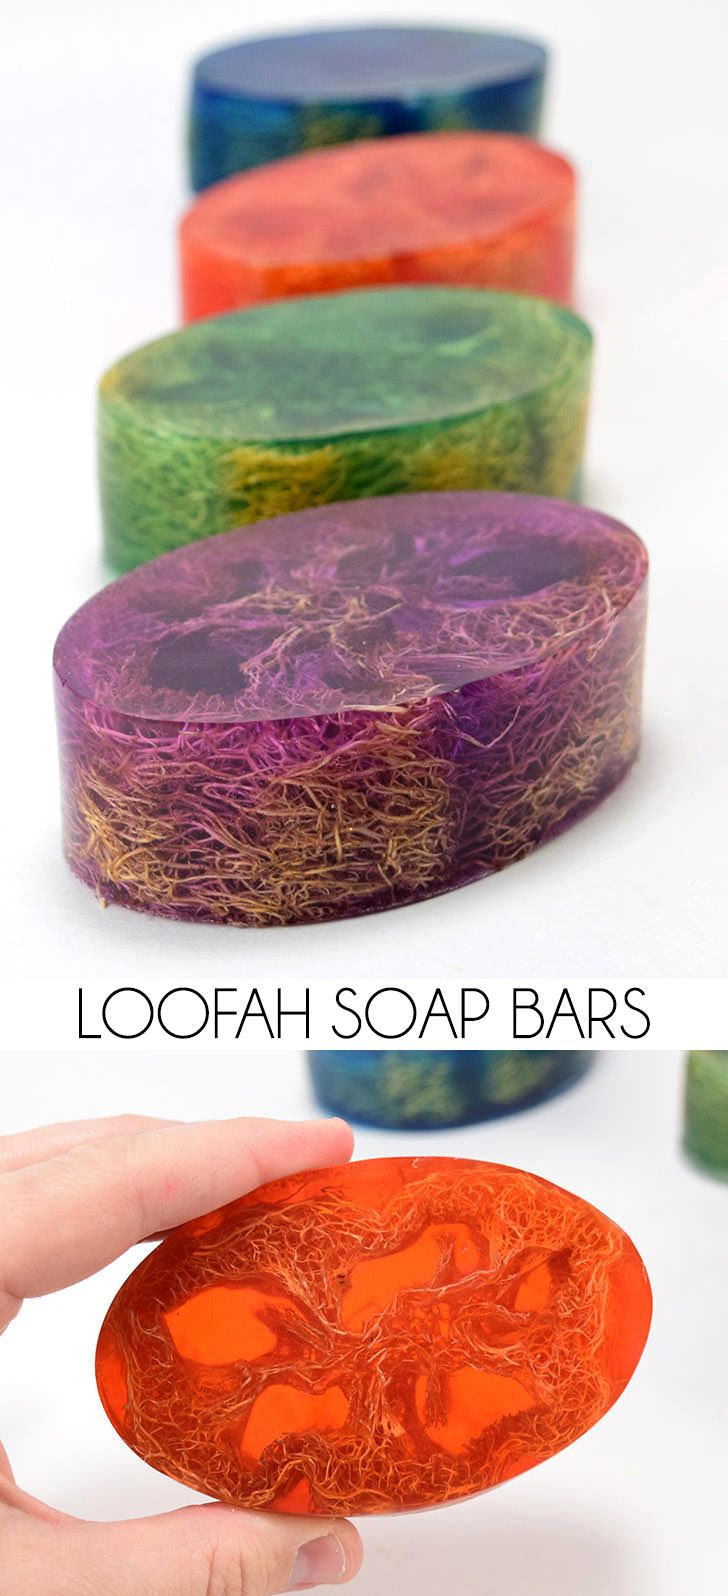 These Loofah Soap Bars make perfect homemade gifts! (Unless you keep them for yourself!)  #gift #DIY #beauty